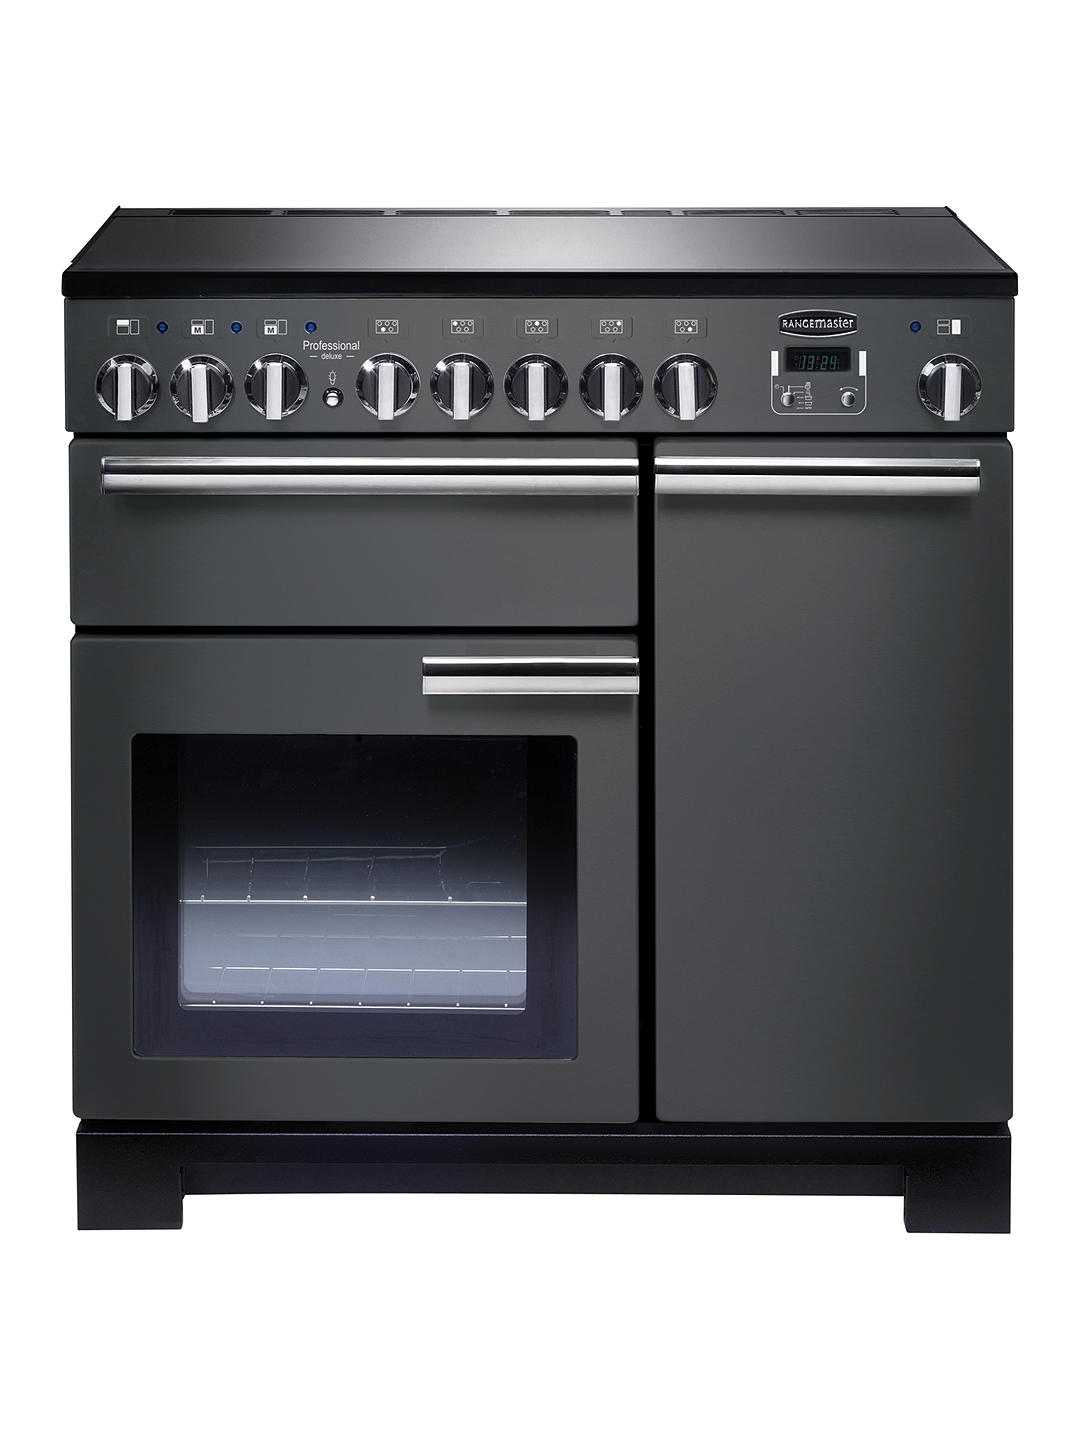 Buy Rangemaster Professional Deluxe 90 Induction Hob Range Cooker, Slate/Chrome Trim Online at johnlewis.com